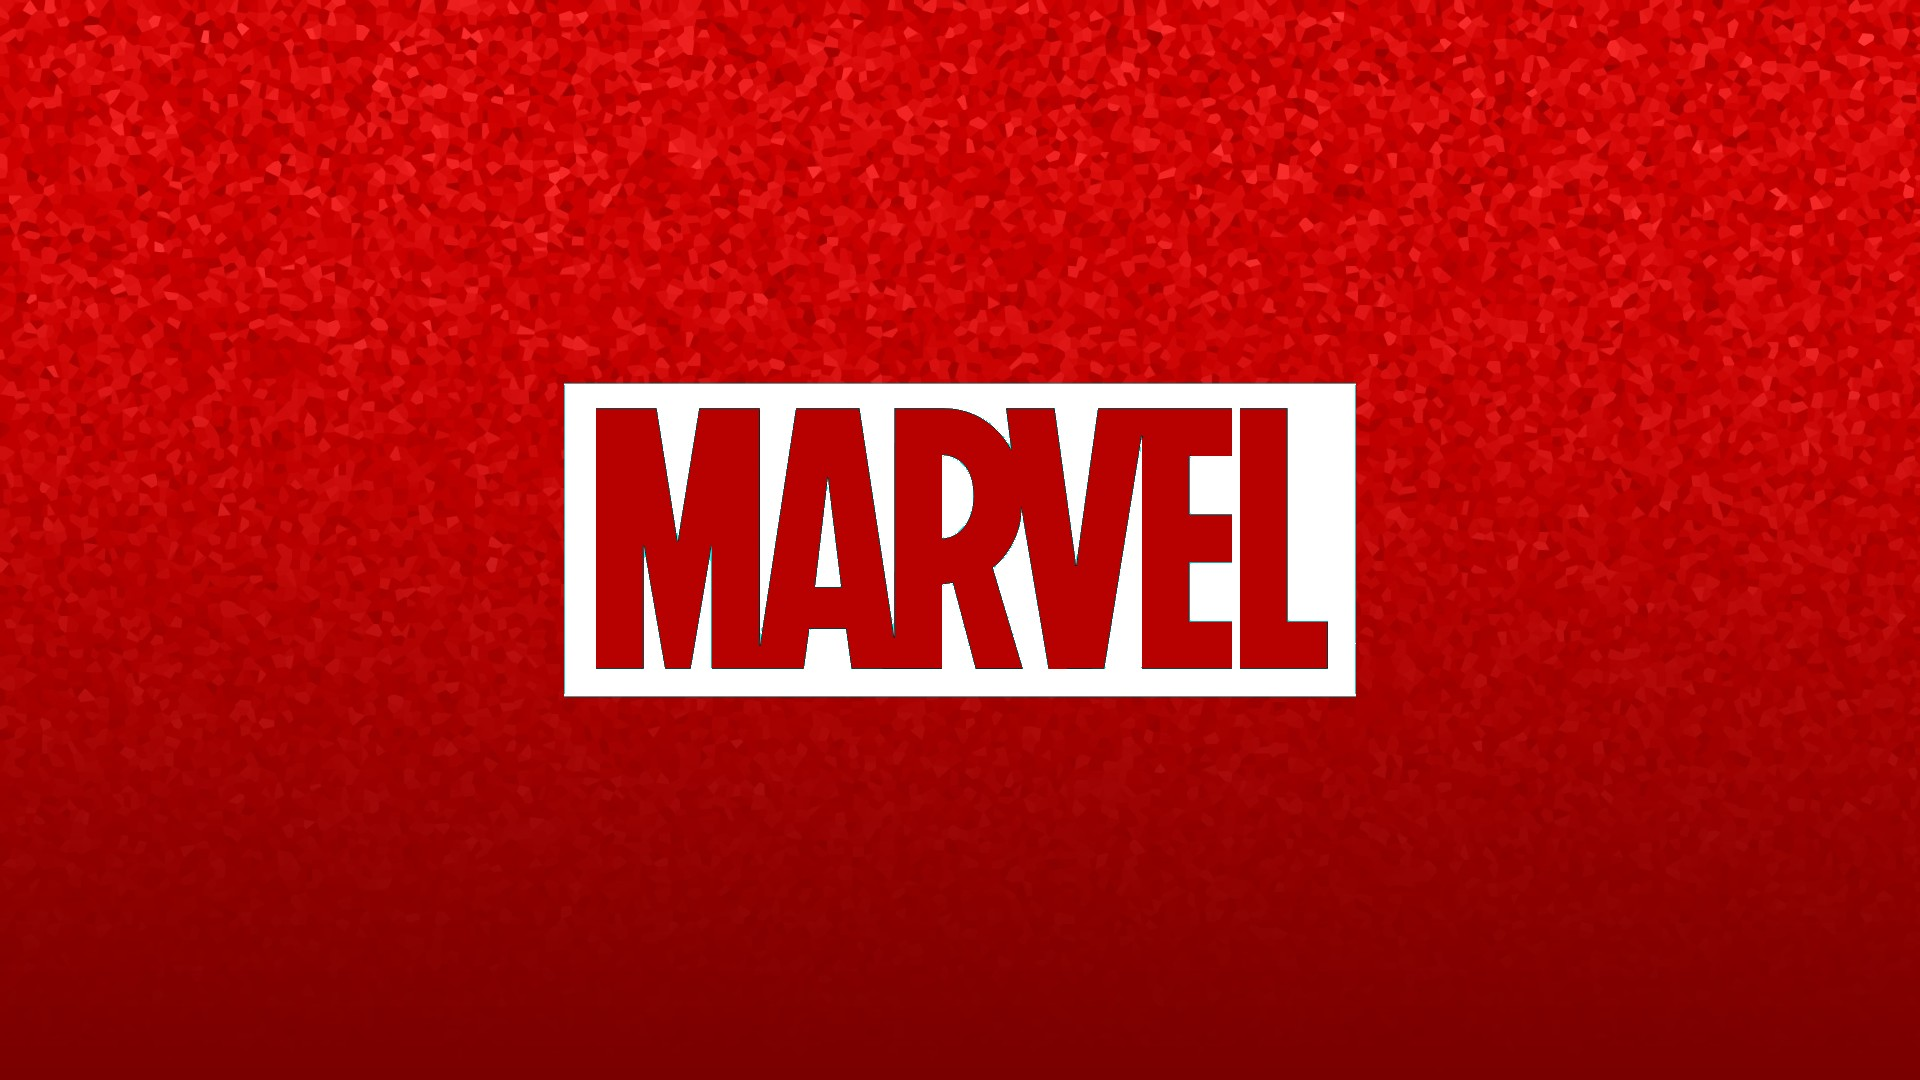 43+ Marvel Wallpapers ·① Download Free Stunning Full HD